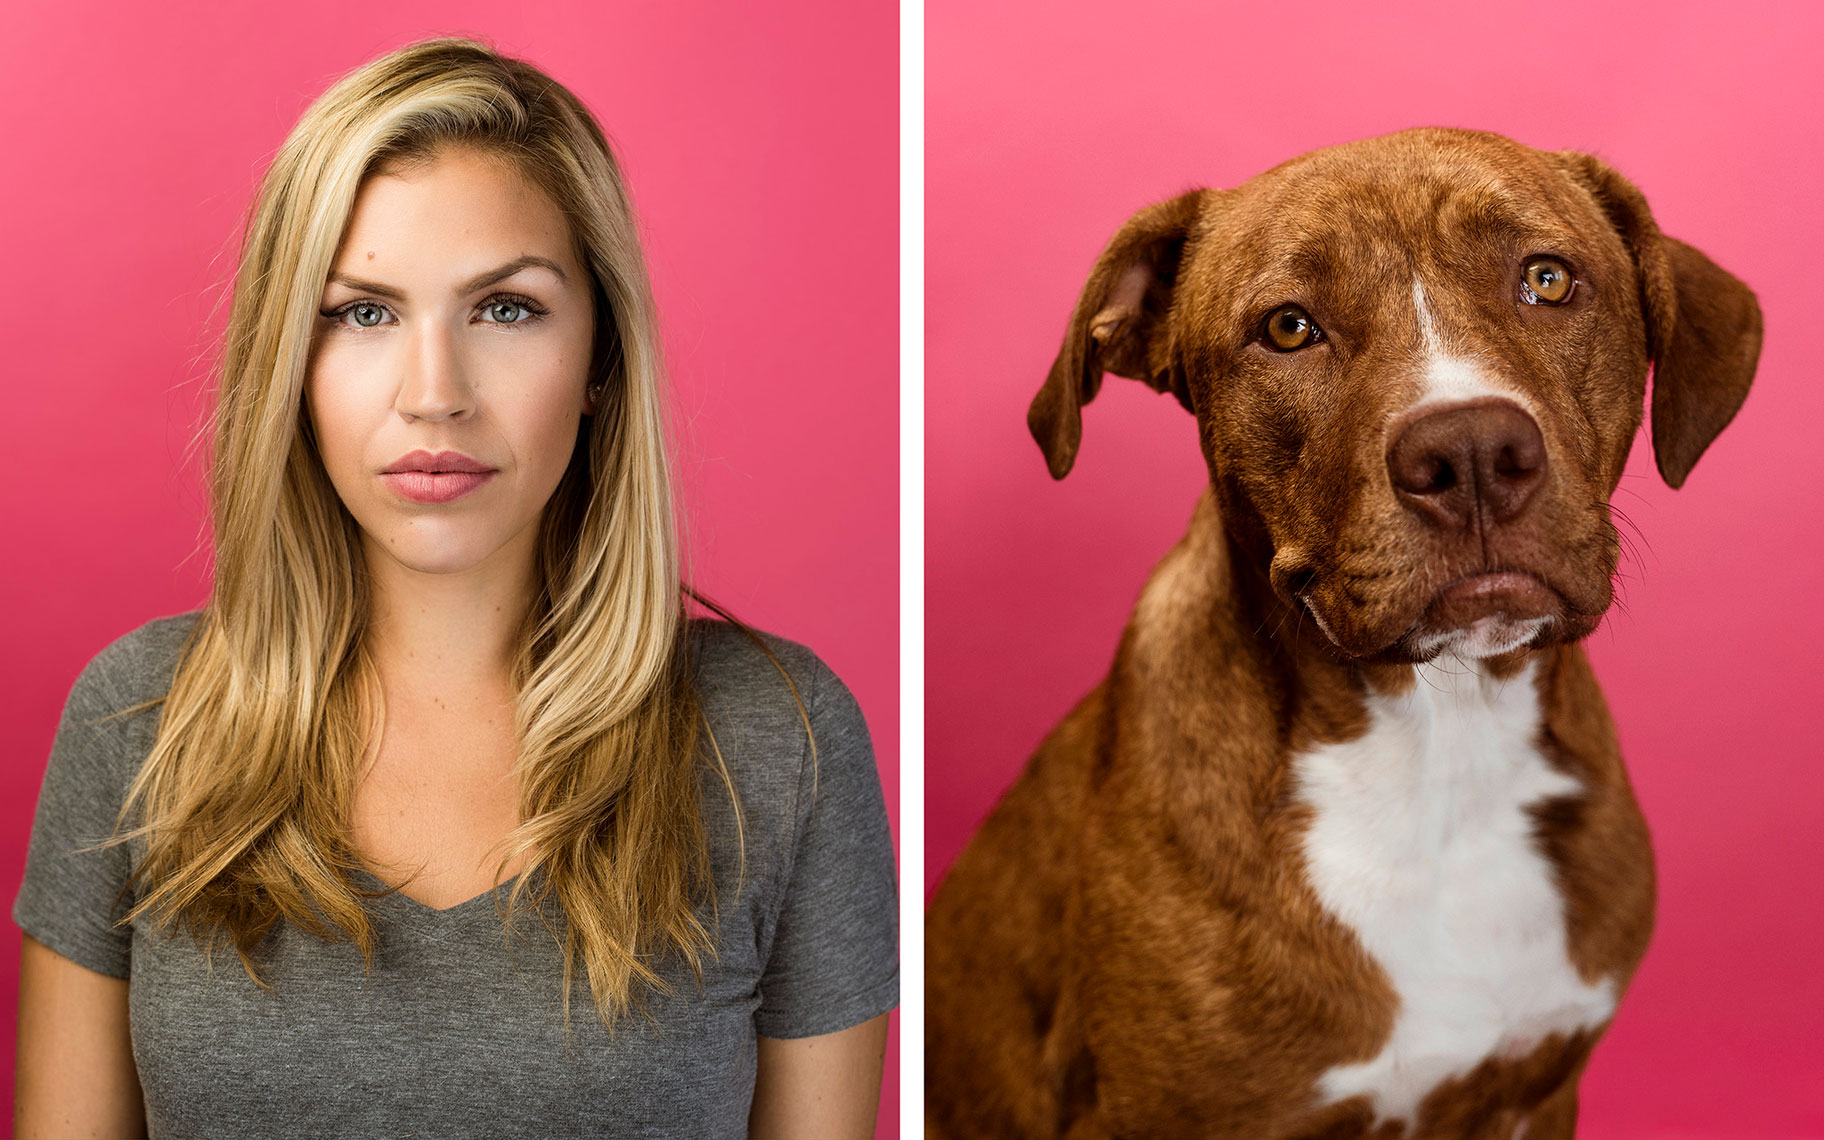 Portrait of Erica Whyte and dog, taken by Texas editorial and portrait photographer Josh Huskin.